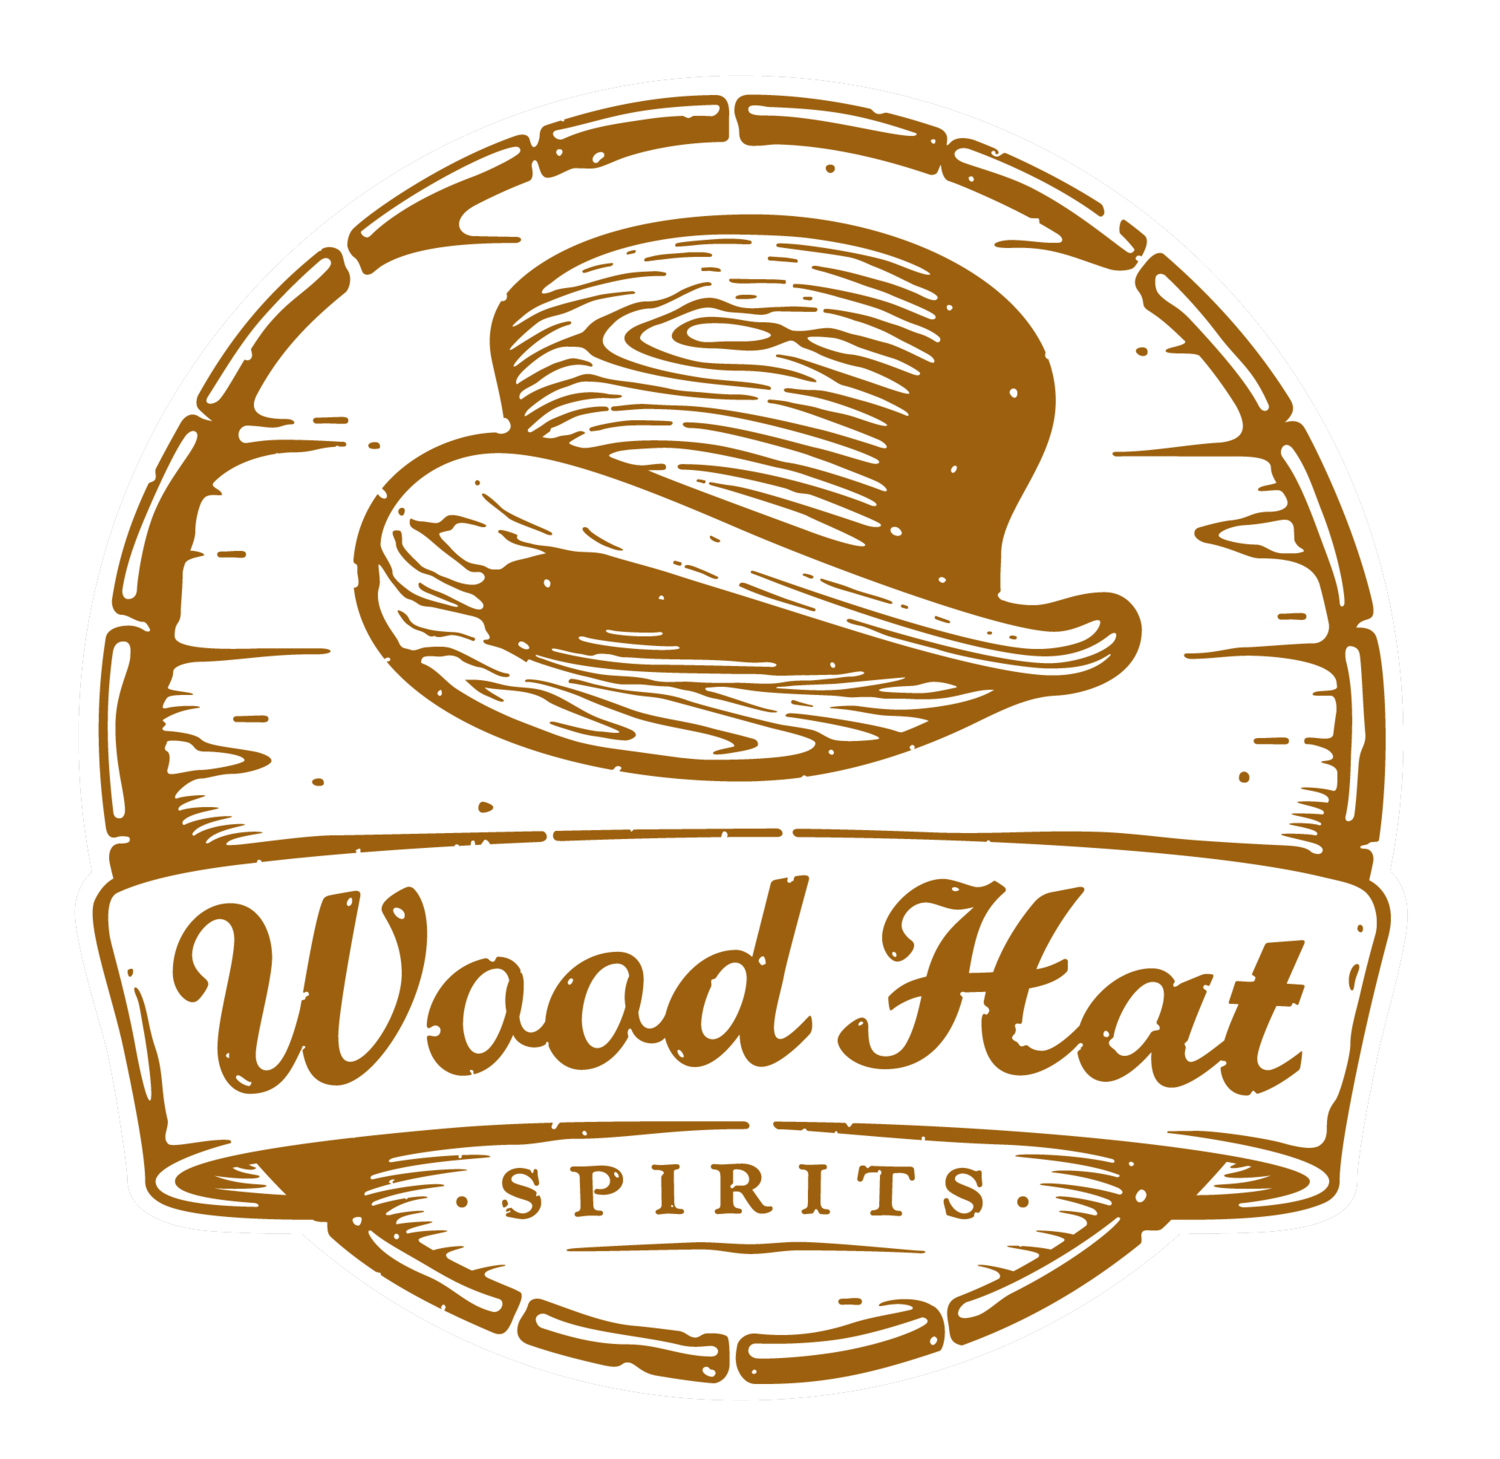 Wood Hat Spirits